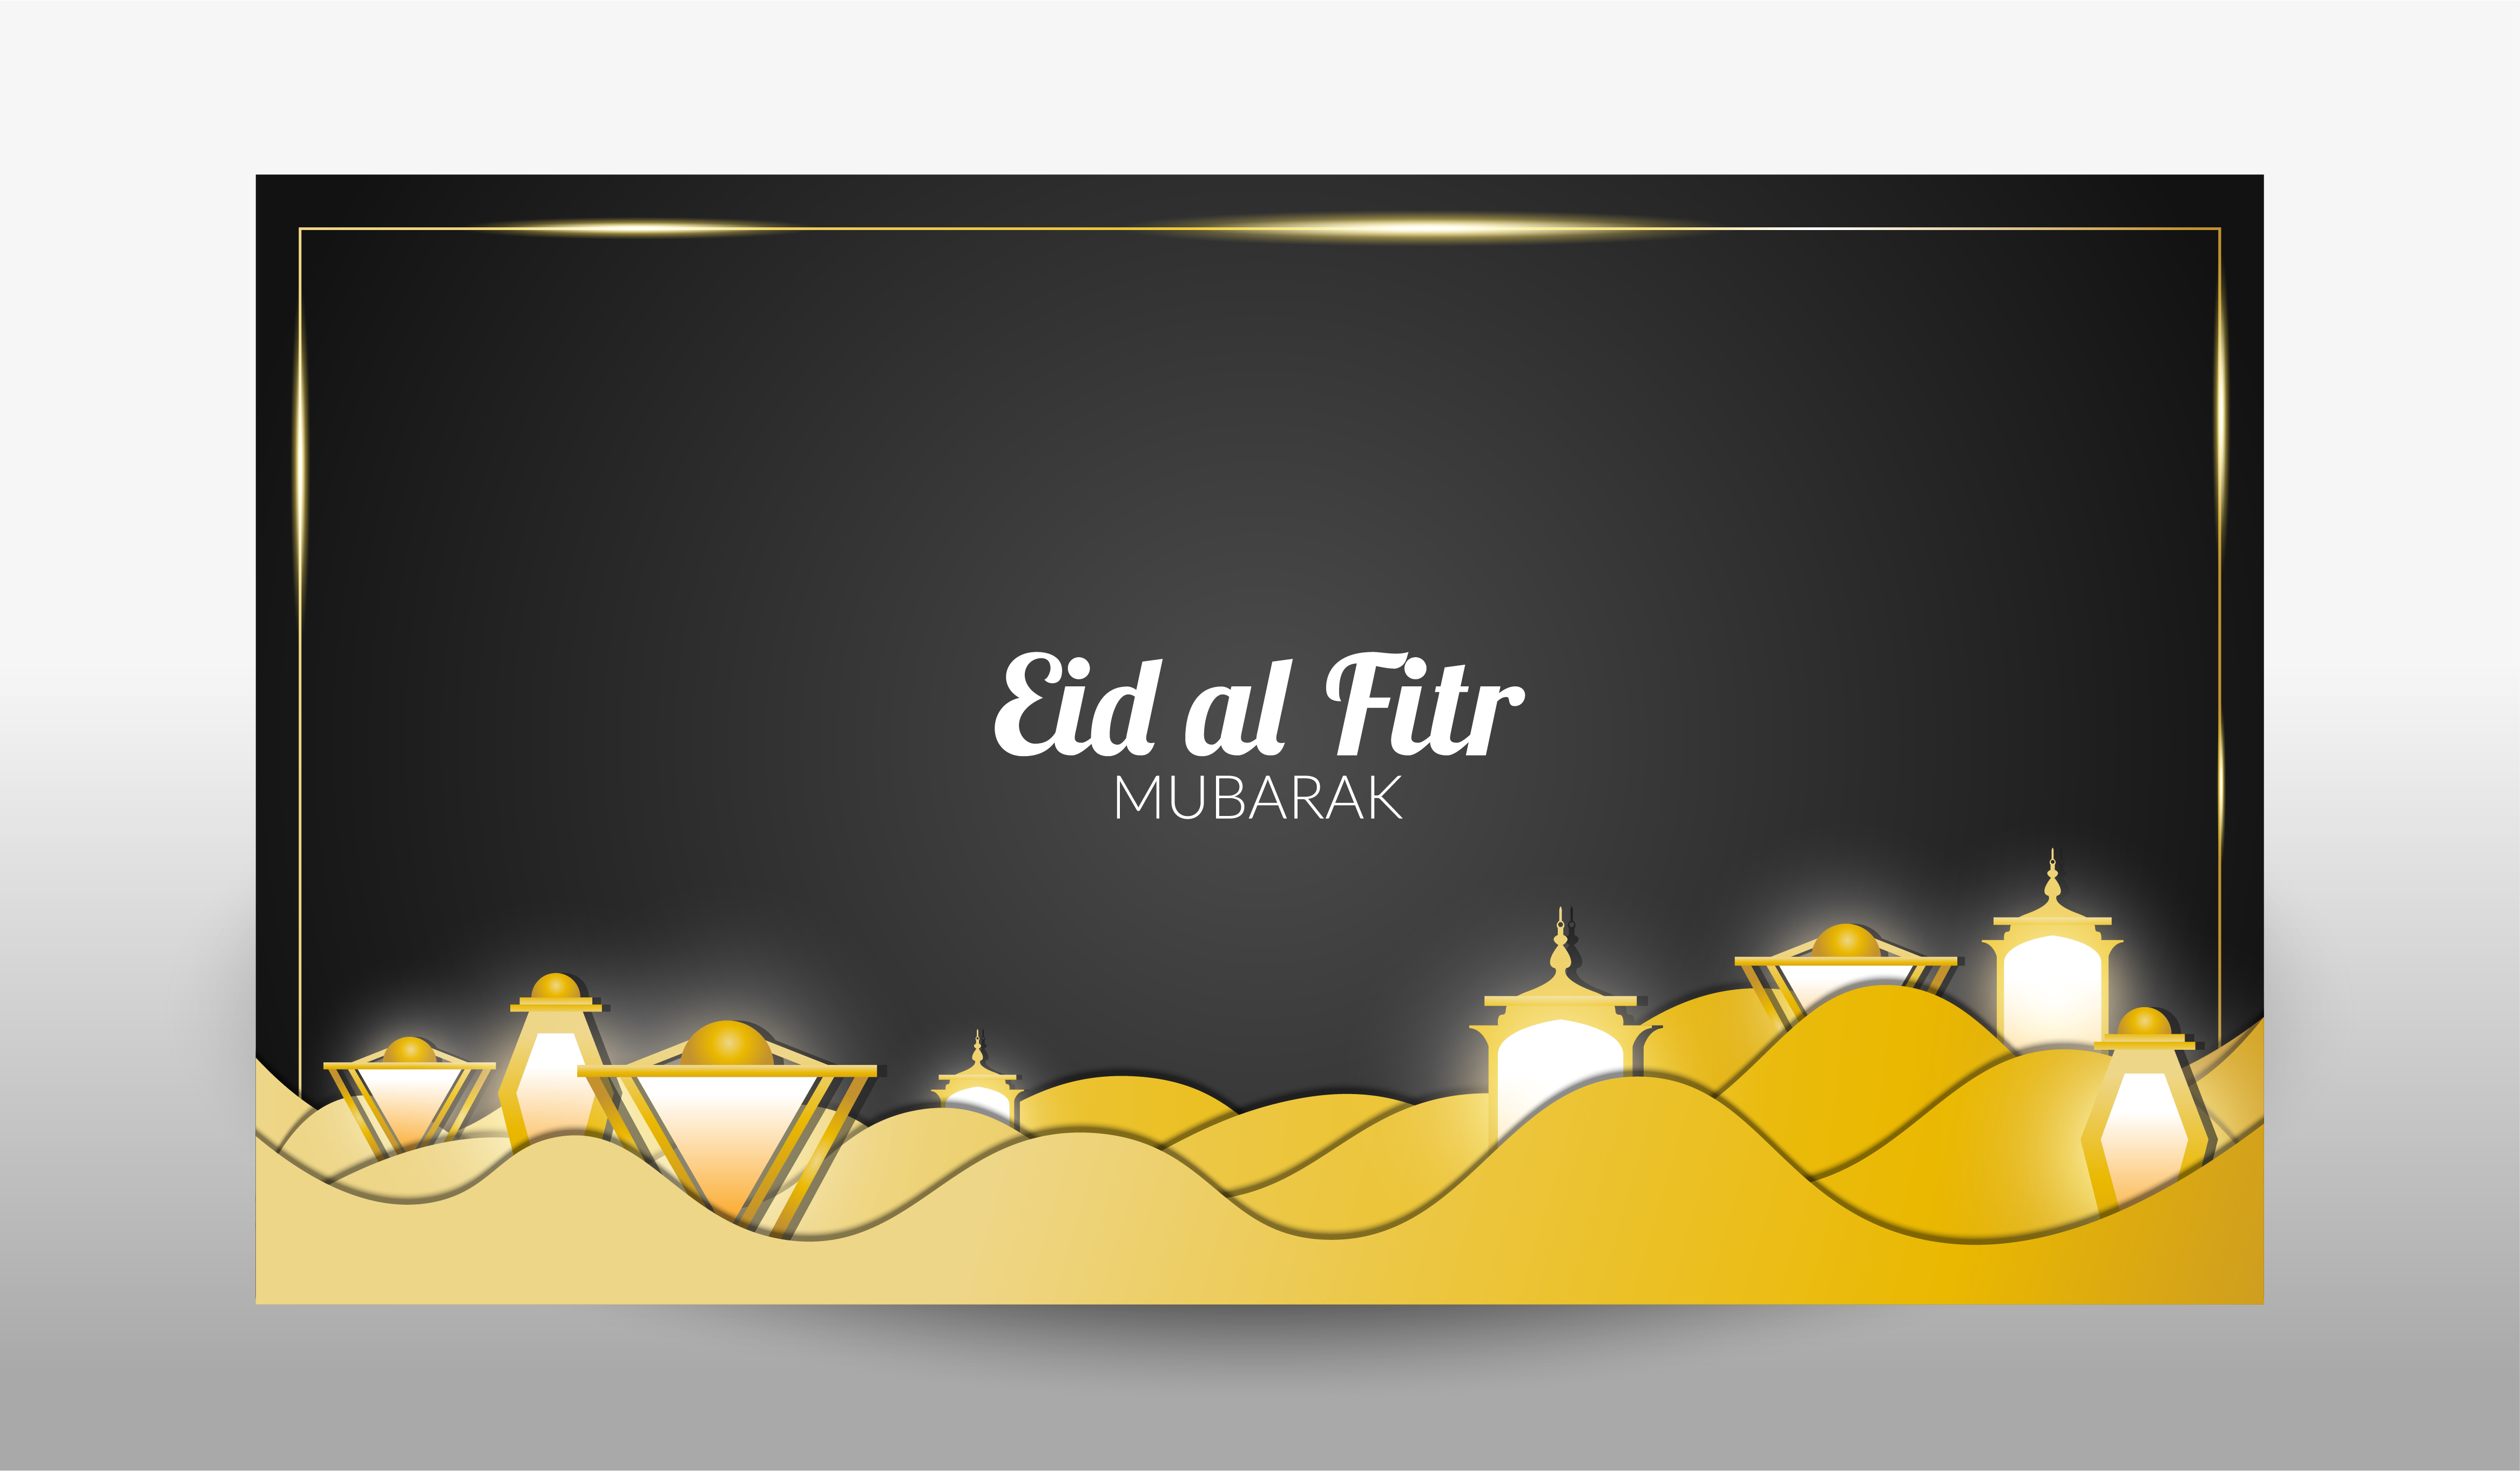 eid al fitr banner with golden waves at bottom download free vectors clipart graphics vector art eid al fitr banner with golden waves at